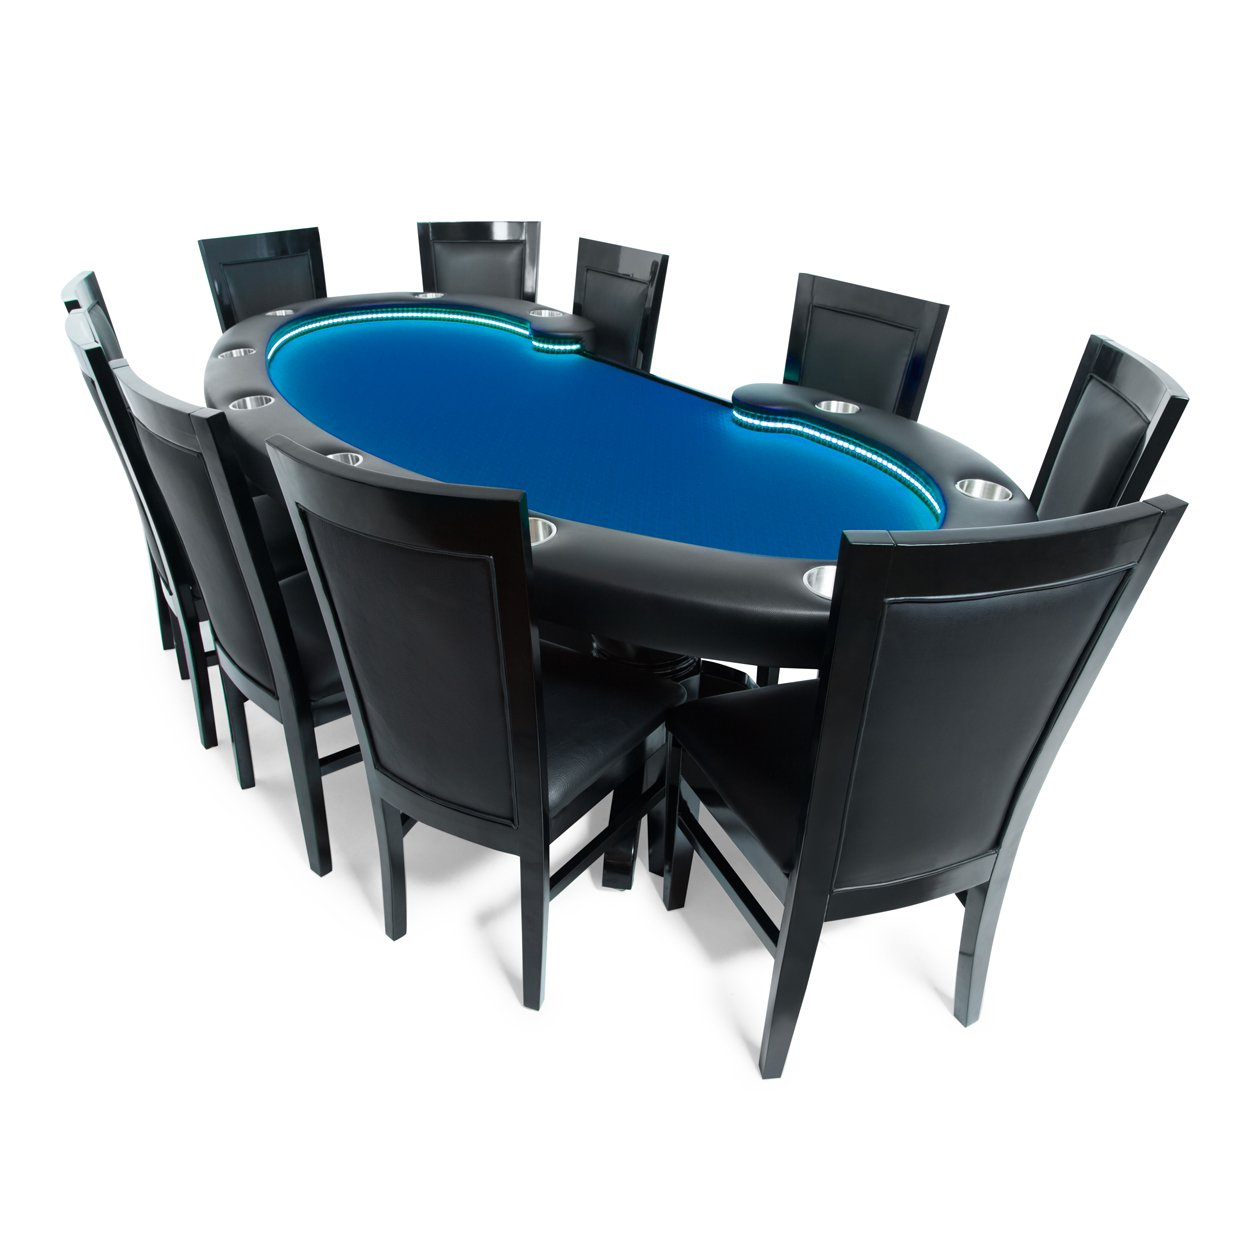 BBO Poker Lumen HD Lighted Poker Table for 10 Players with Blue Speed Cloth Playing Surface, 101.5 x 46-Inch Oval, Includes 10 Dining Chairs